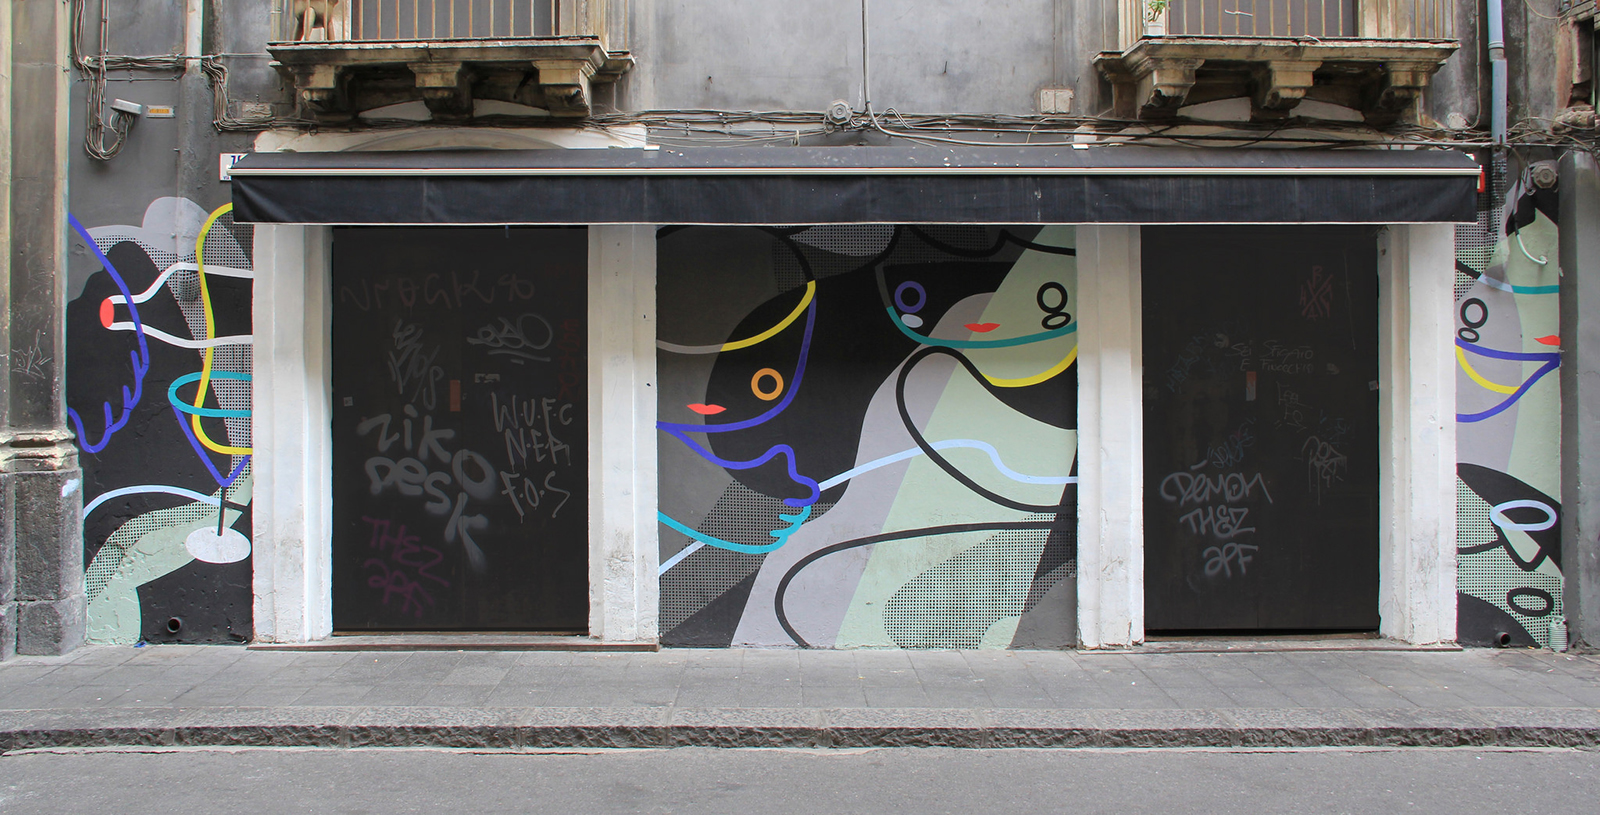 gue-la-nuit-new-mural-in-catania-01